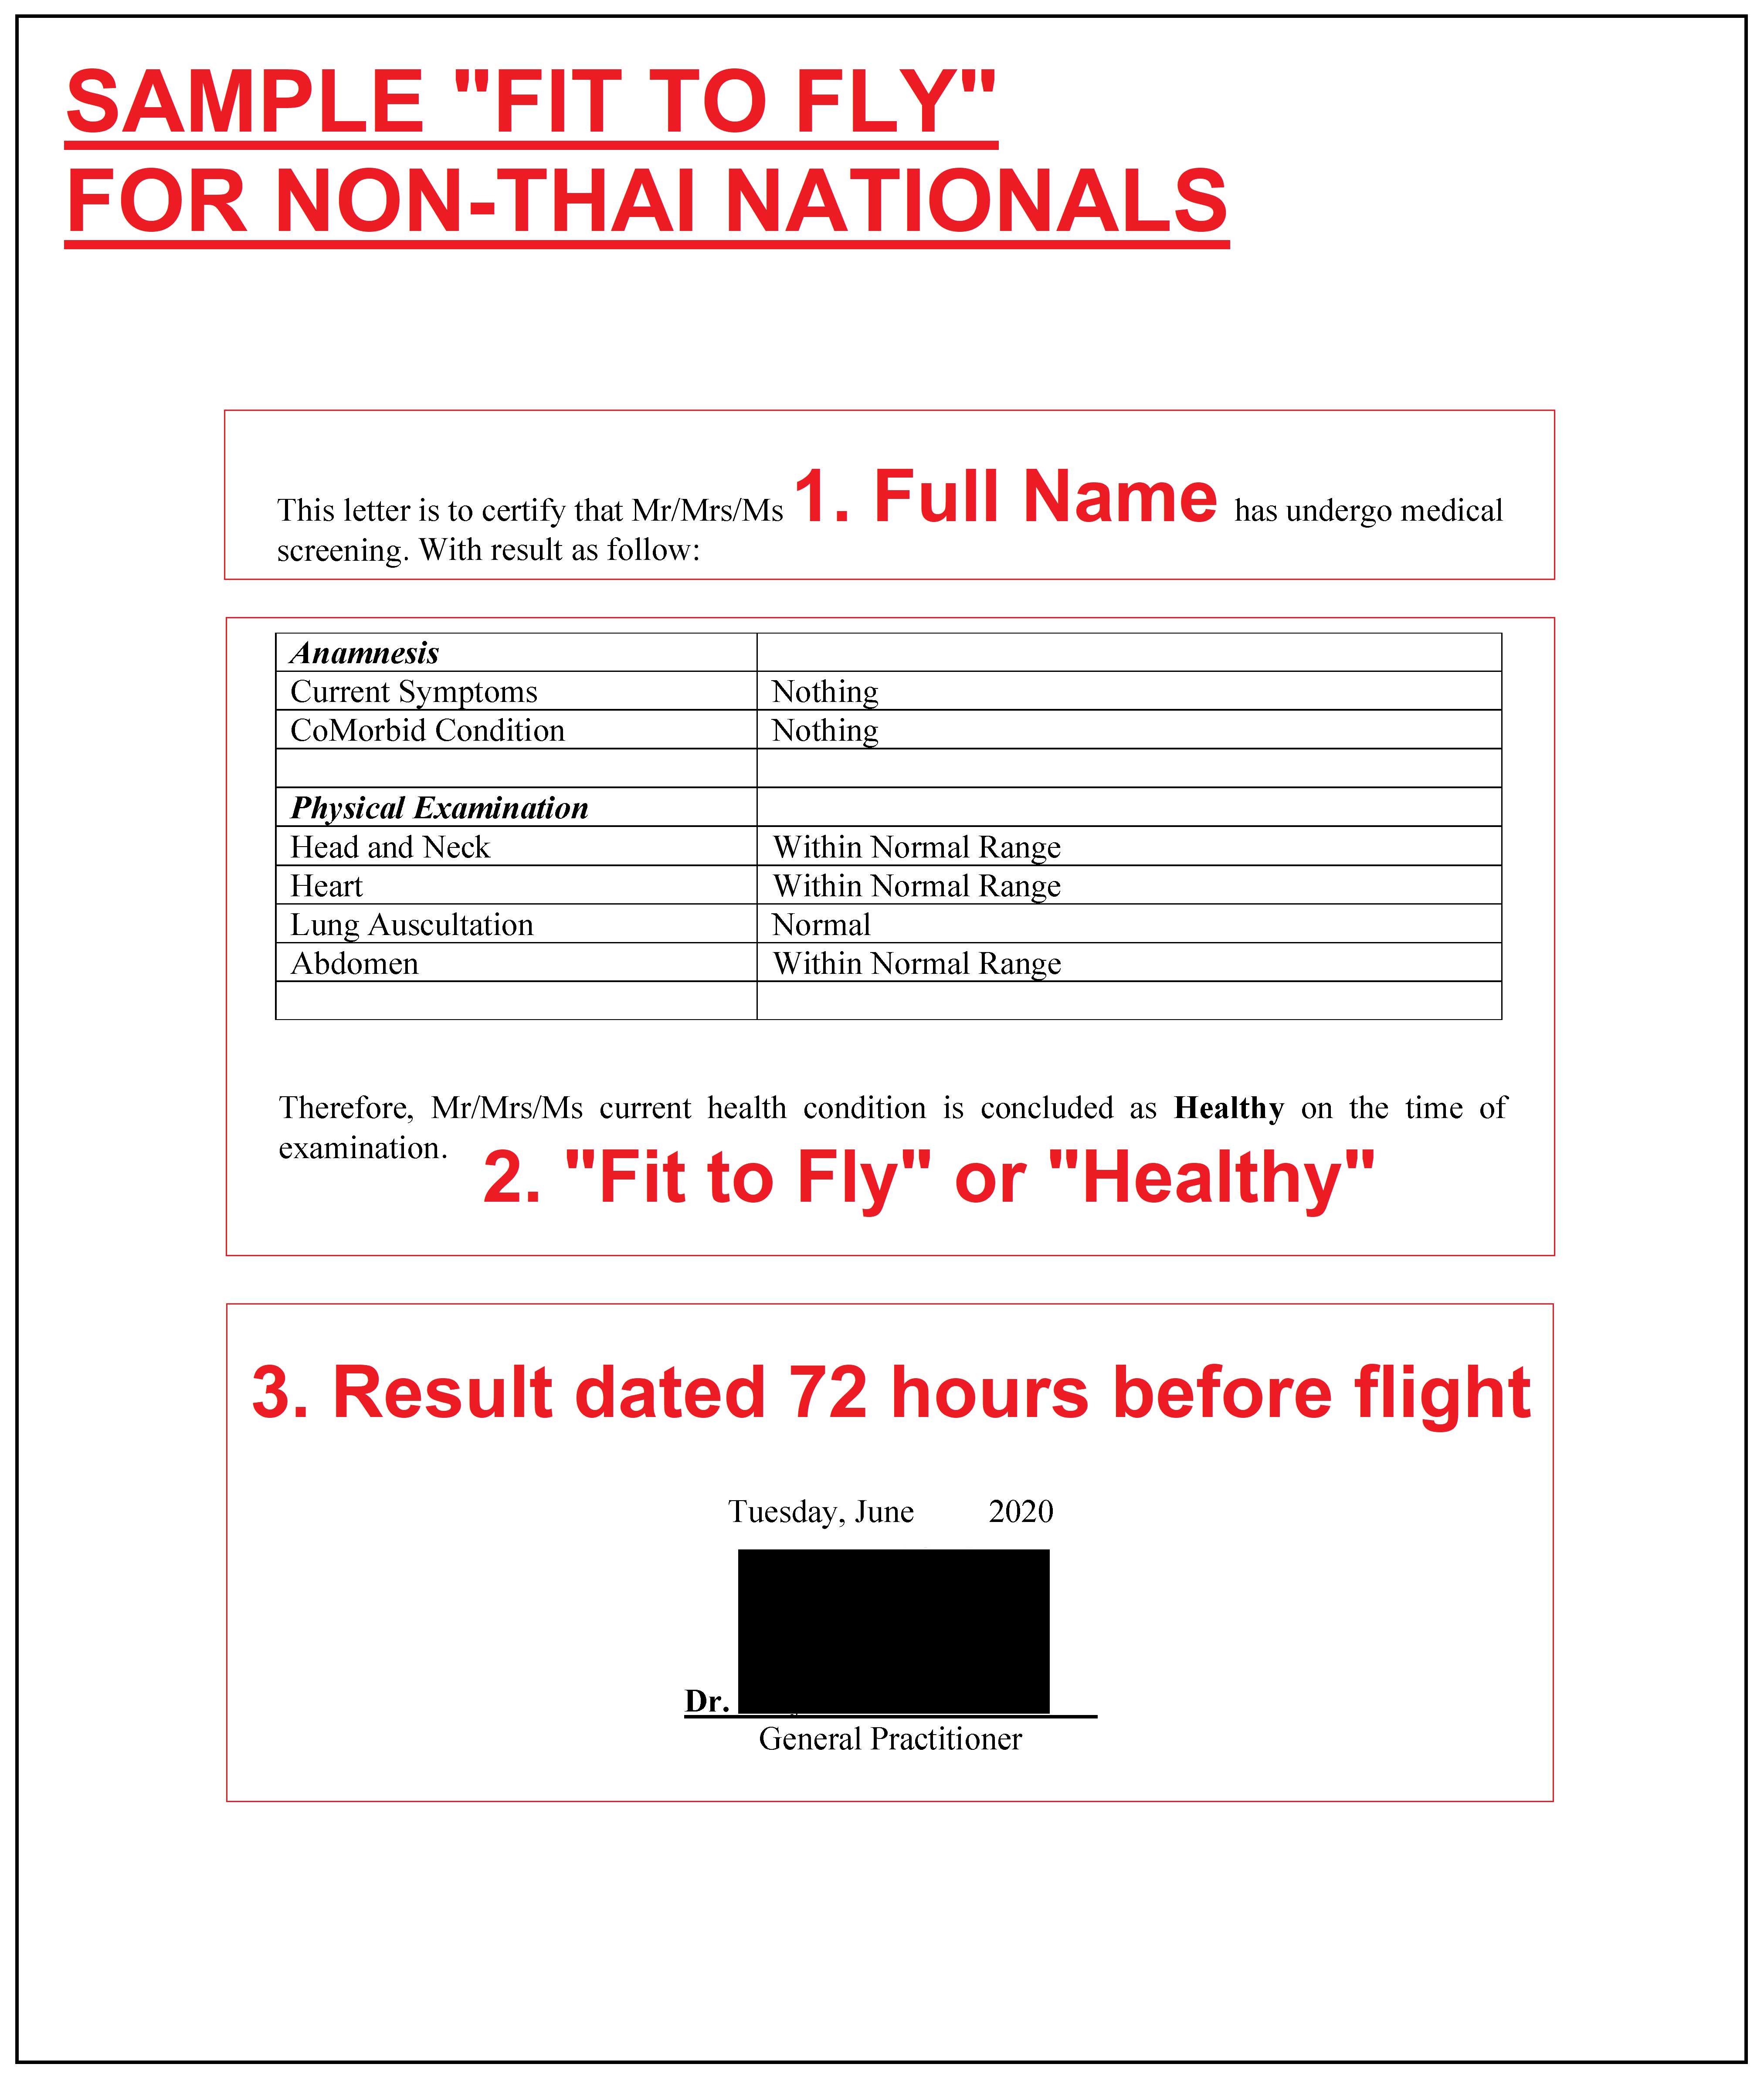 Important Information On Certificate Of Entry Coe And Visa Application สถานเอกอ ครราชท ต ณ กร งจาการ ตา